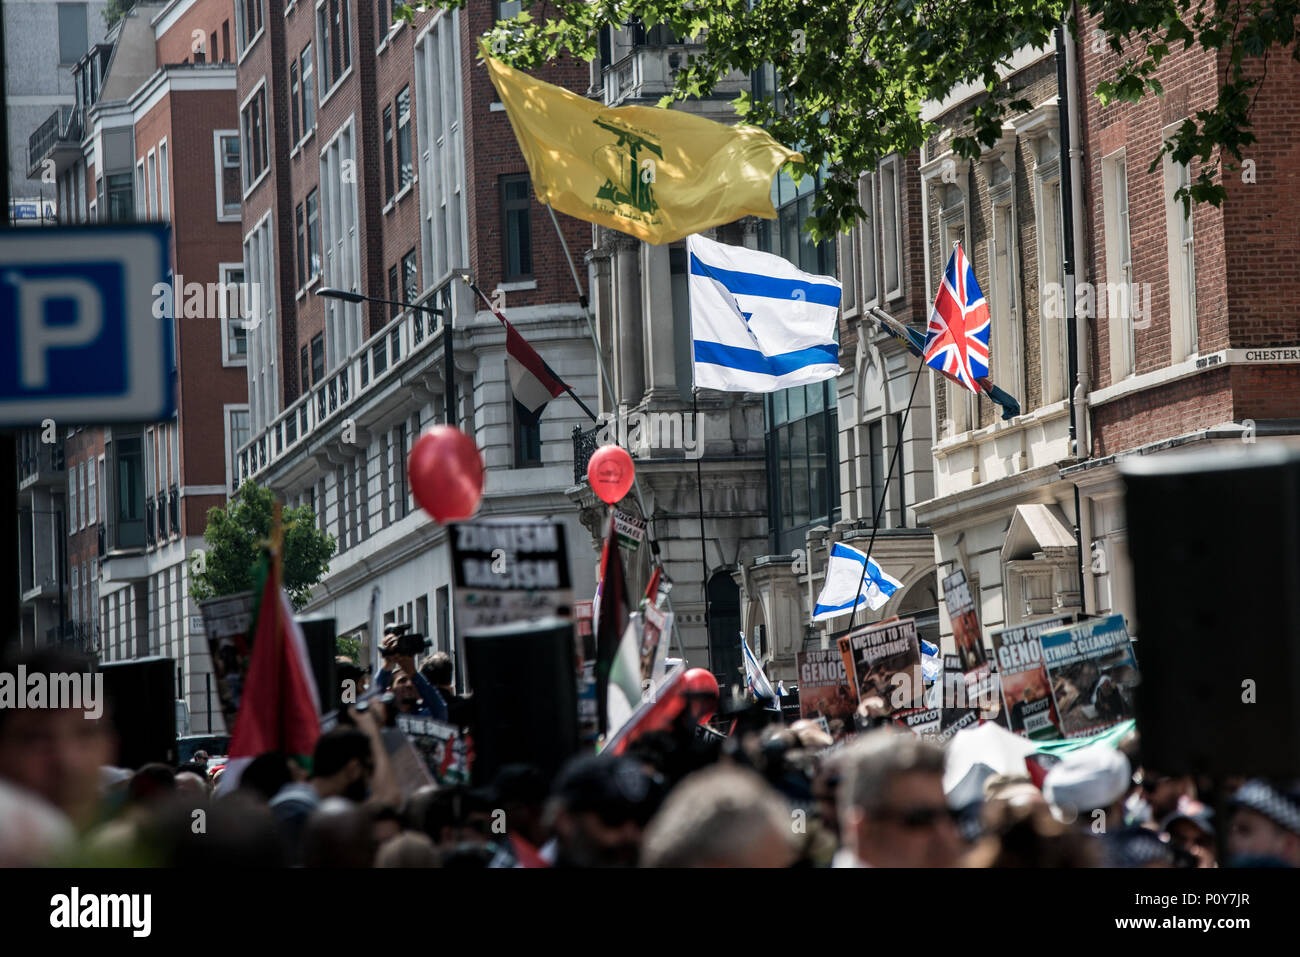 A Hezbollah flag in front the pro-zionist counter-demo.  Hundreds of anti-Israel protesters marched through the streets on the annual Al Quds Day. Started by the Ayatollah Khomeini in 1979 to show support for Palestine and oppose the existence of Israel and the counter protest from the Zionist Federation. - Stock Image